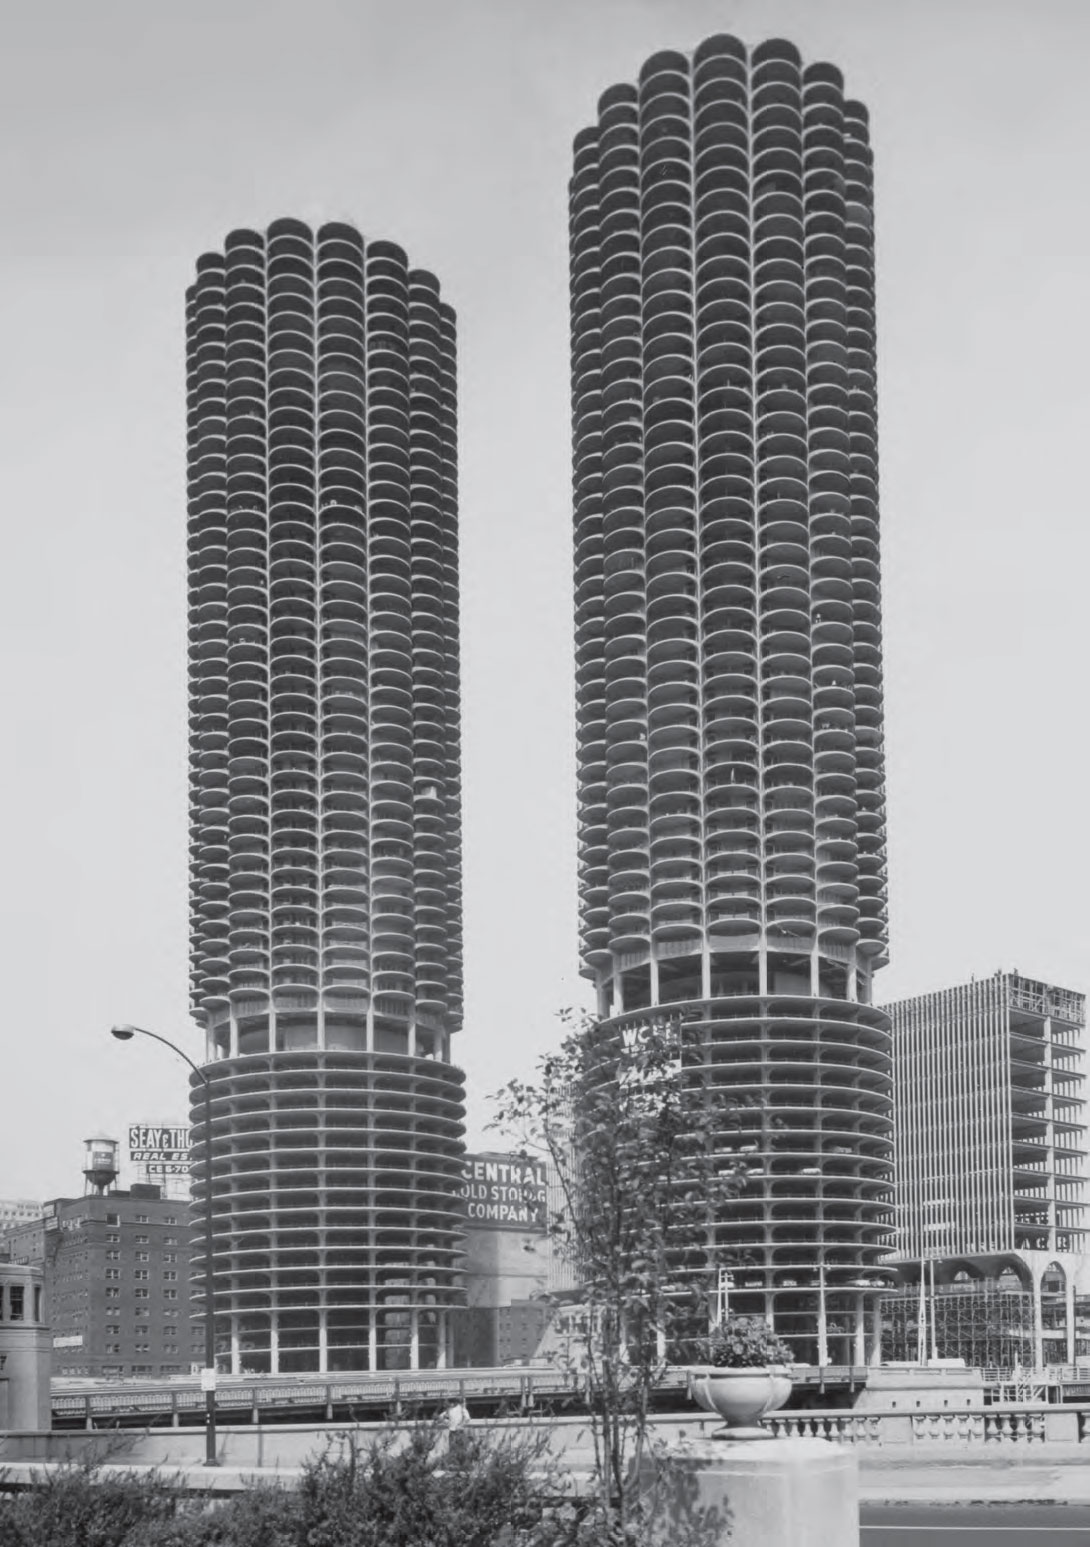 Marina City, Chicago by Bertrand Goldberg, as reproduced in Atlas of Brutalist Architecture